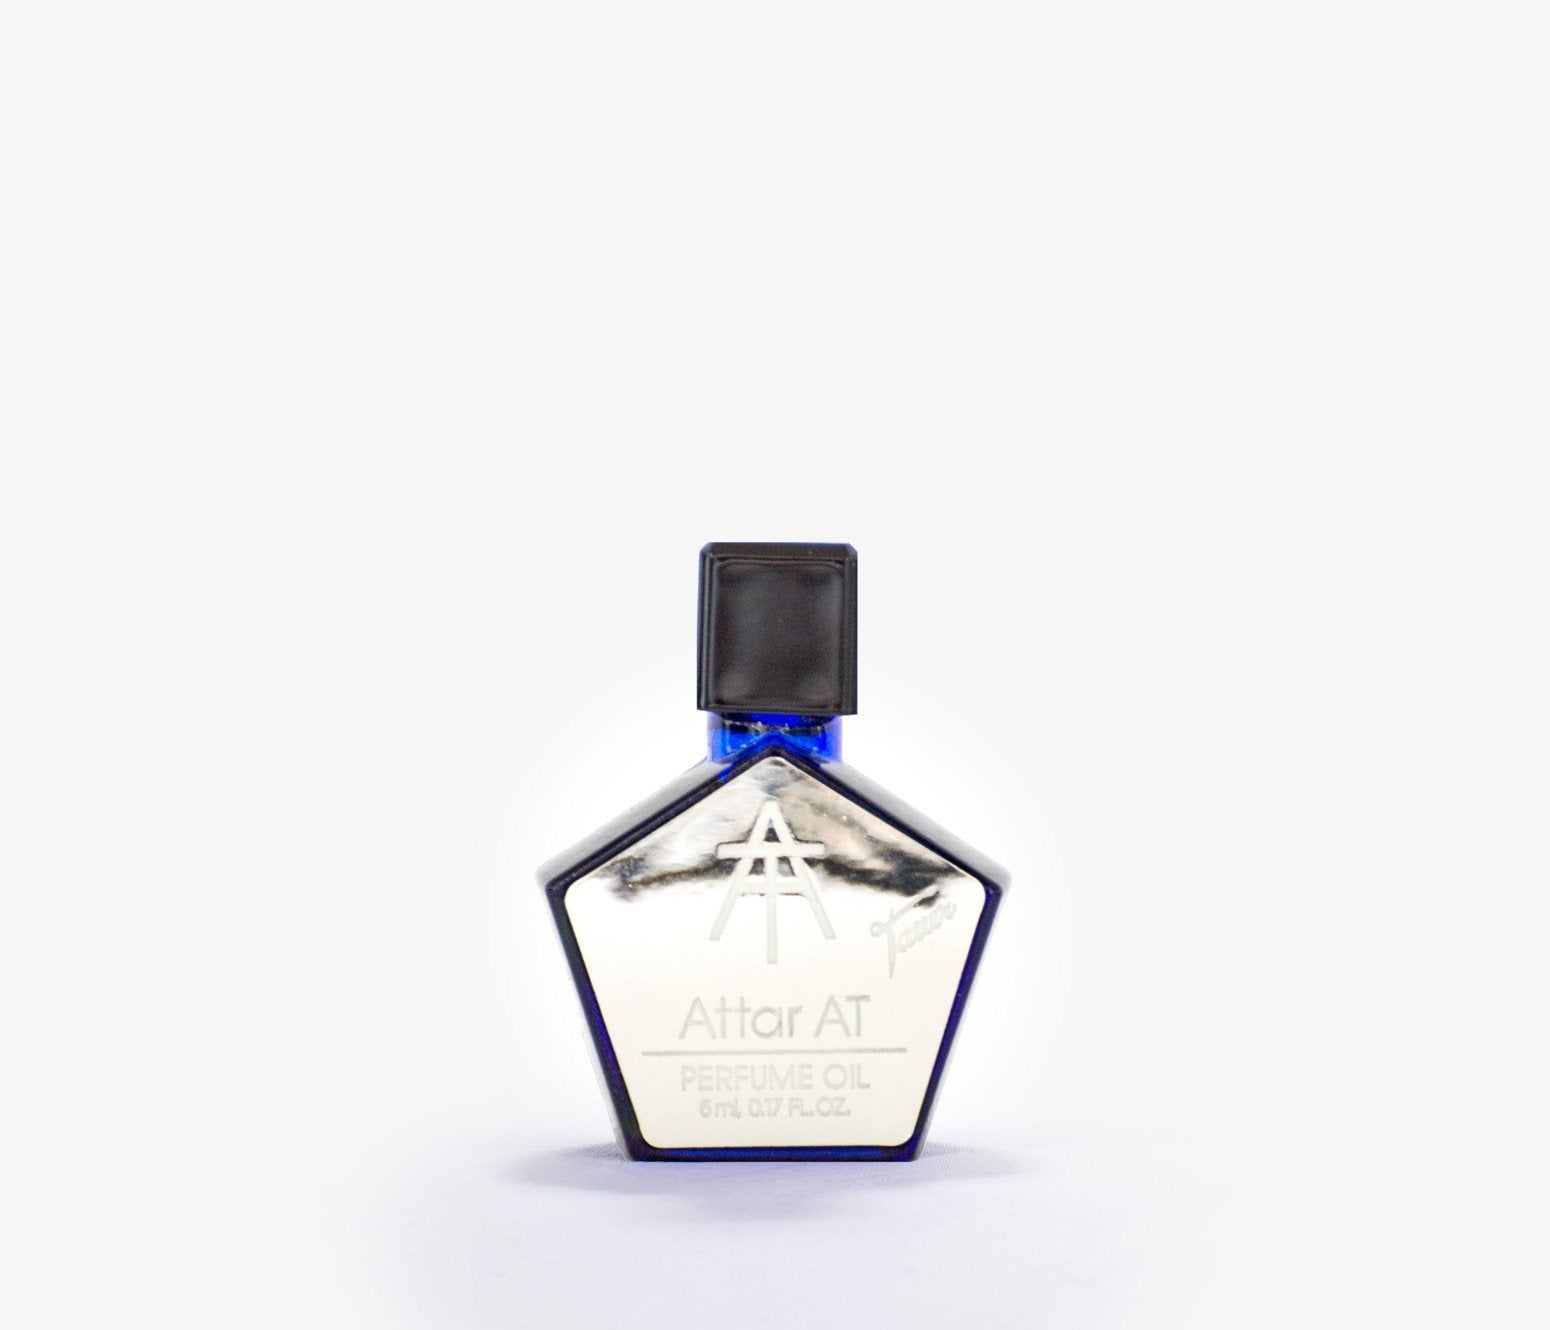 Tauer Perfumes - Attar AT Perfume Oil